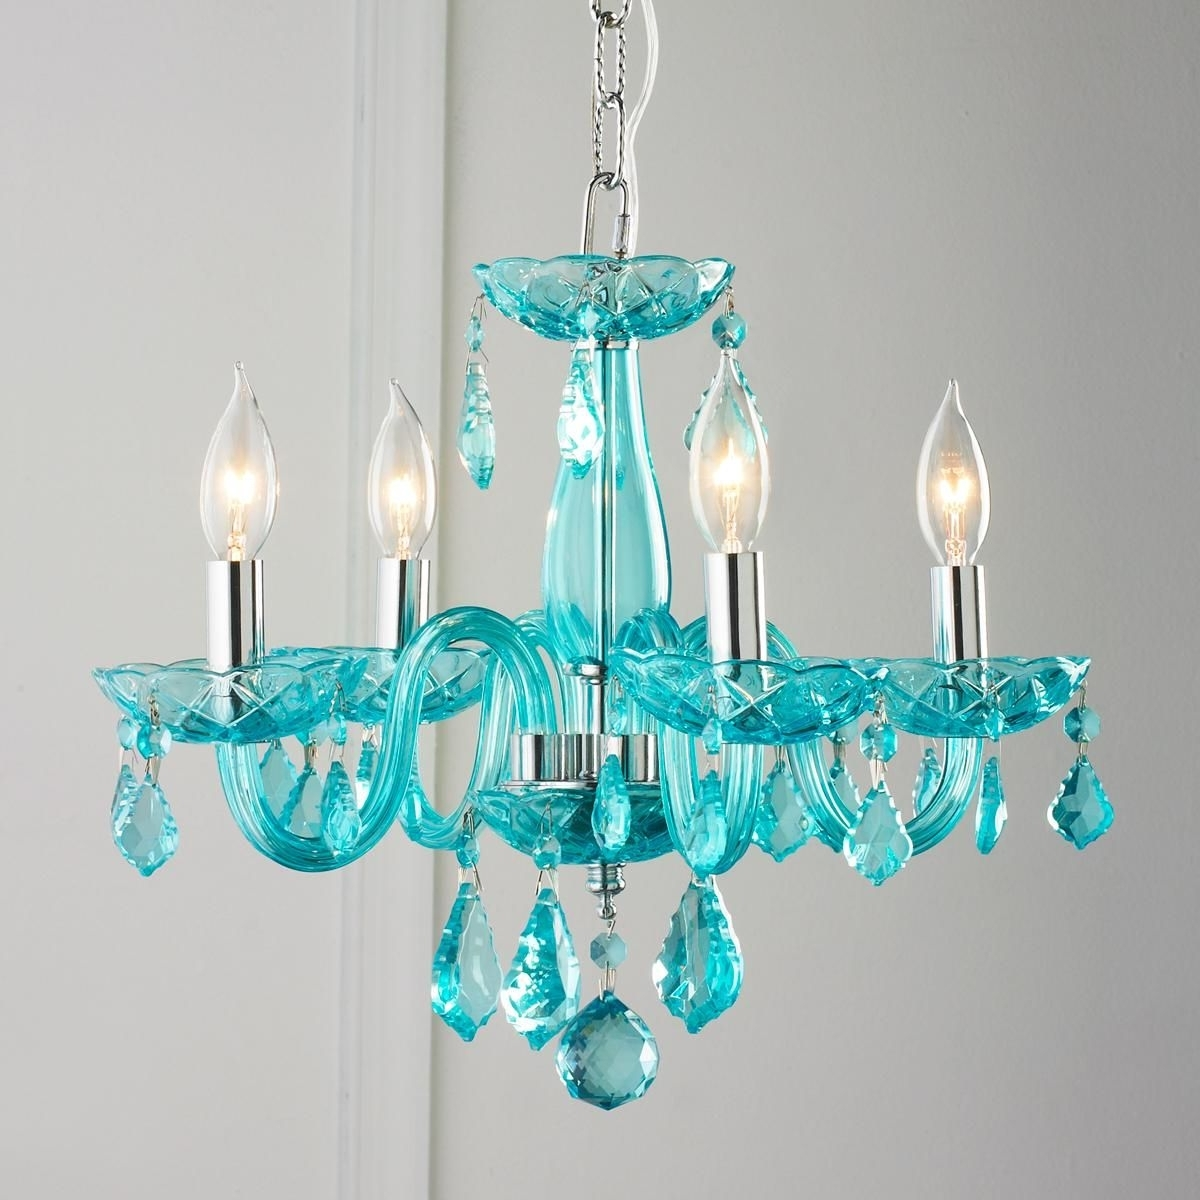 Turquoise Bedroom Chandeliers With Regard To Most Popular Color Crystal Mini Chandelier (View 17 of 20)